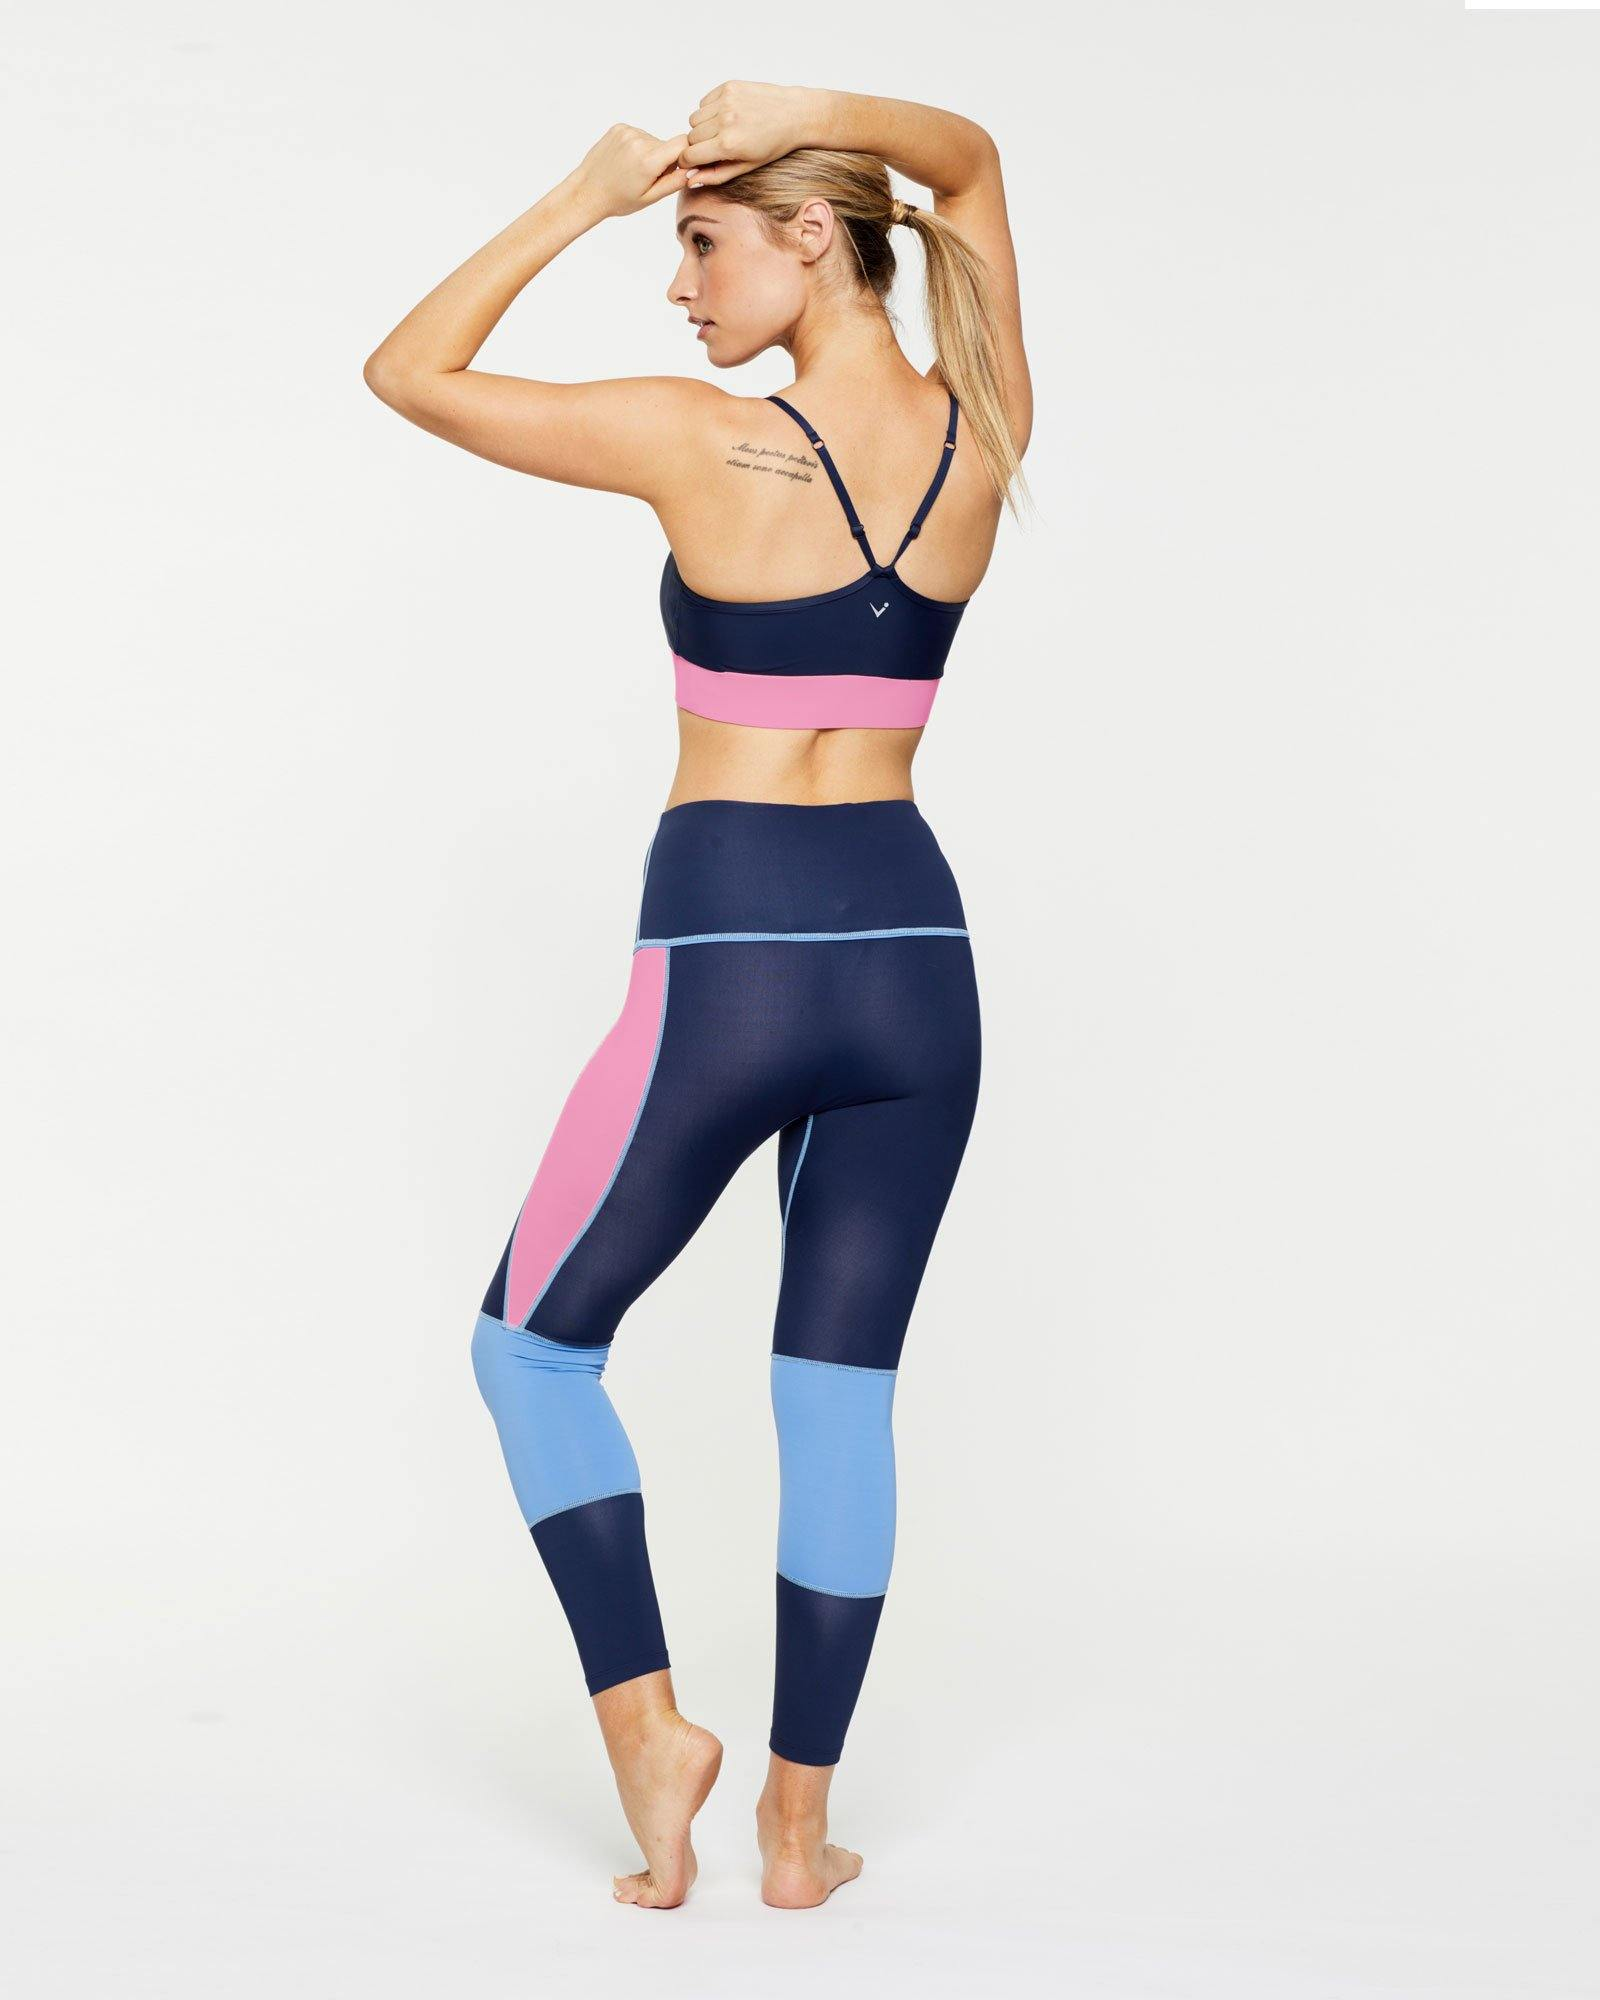 Femininely GRACILIS 7/8 HIGH WAISTED LEGGING Navy Blue WITH CONTRAST PANELS Sky blue and peony pink work with Infraspinatus active bra top, back VIEW, for pilates, barre, yoga, dance, gym-workouts